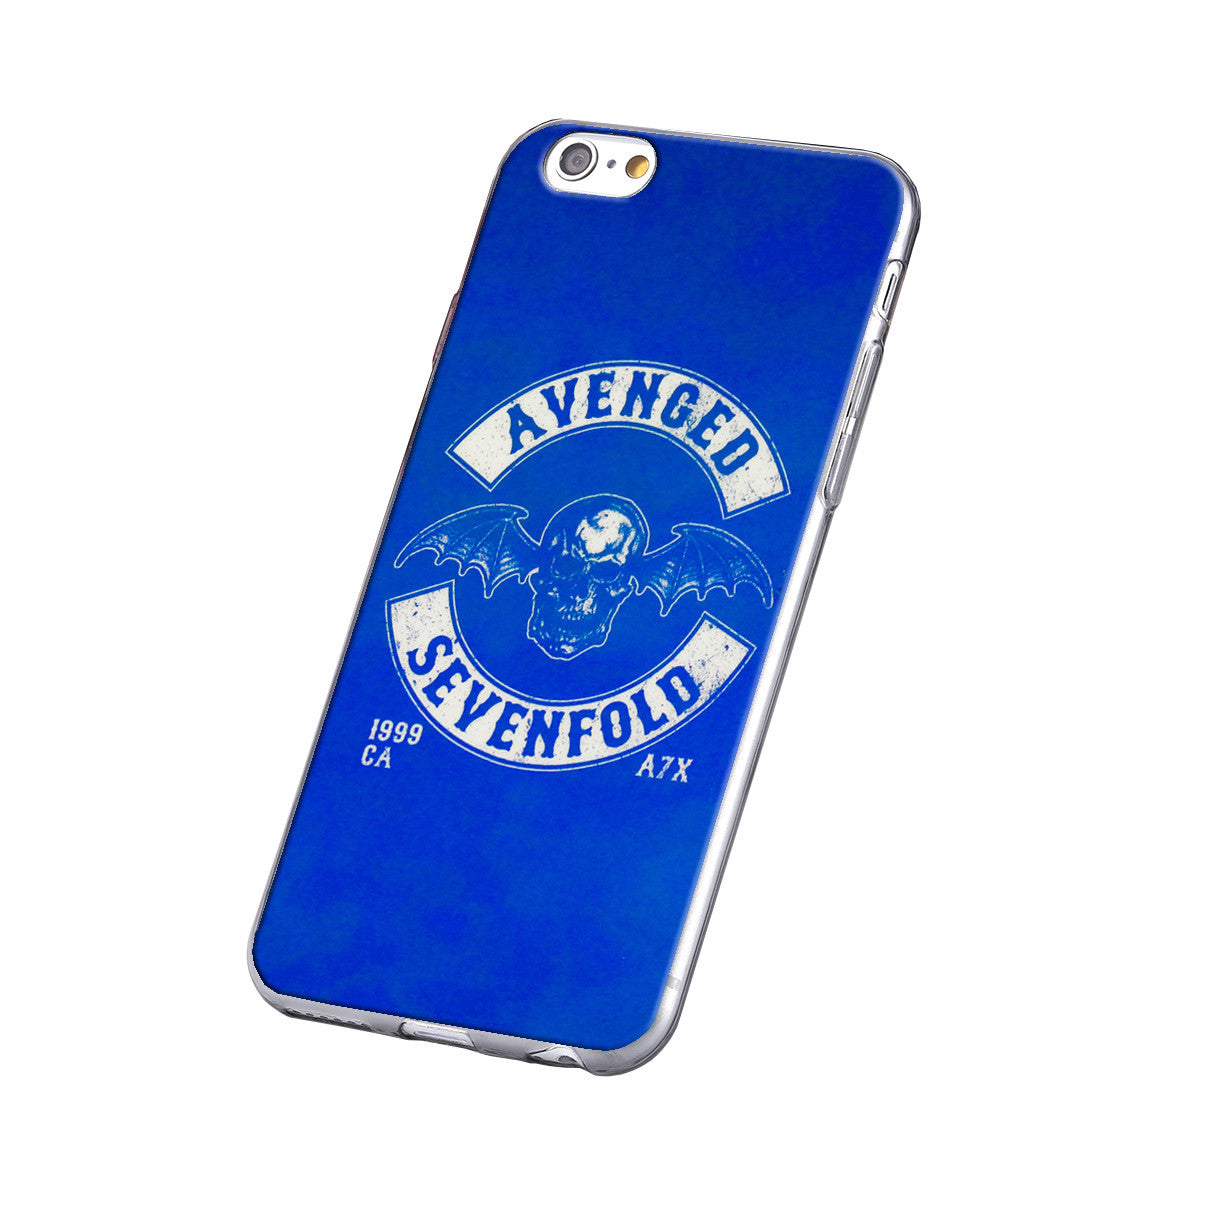 avenged sevenfold iphone 6 case